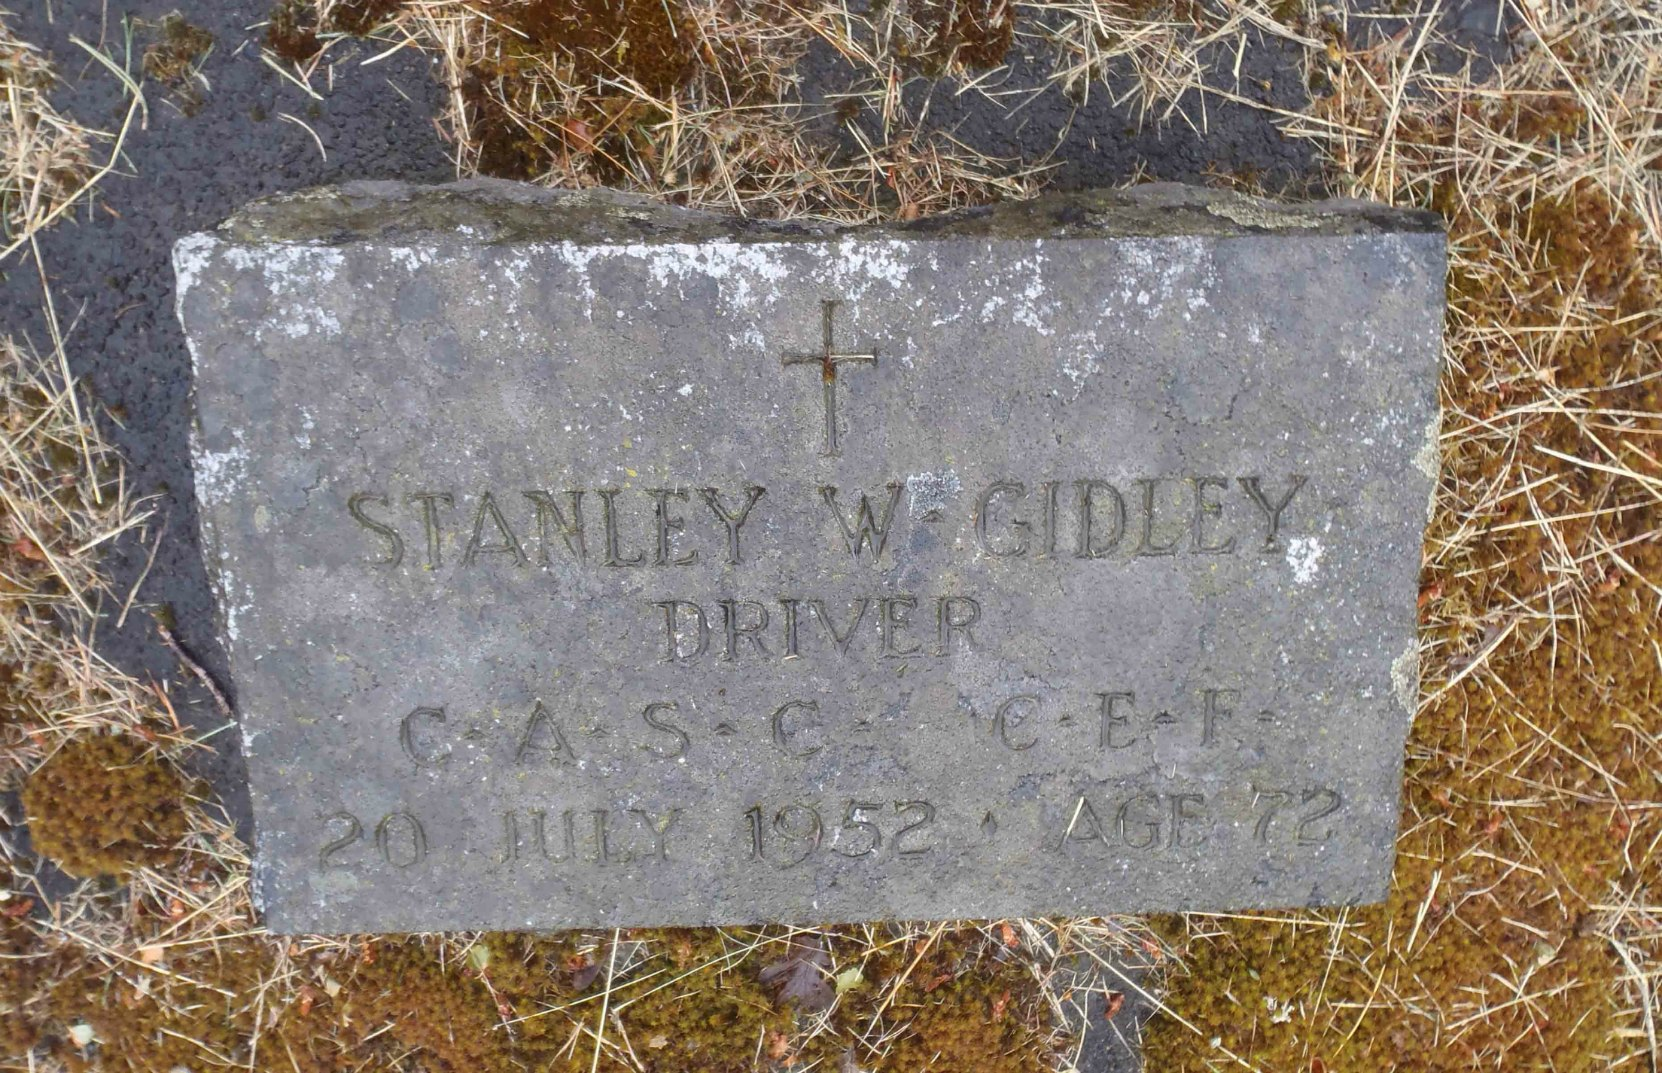 Stanley William Gidley grave marker, Mountain View Cemetery, North Cowichan, B.C.